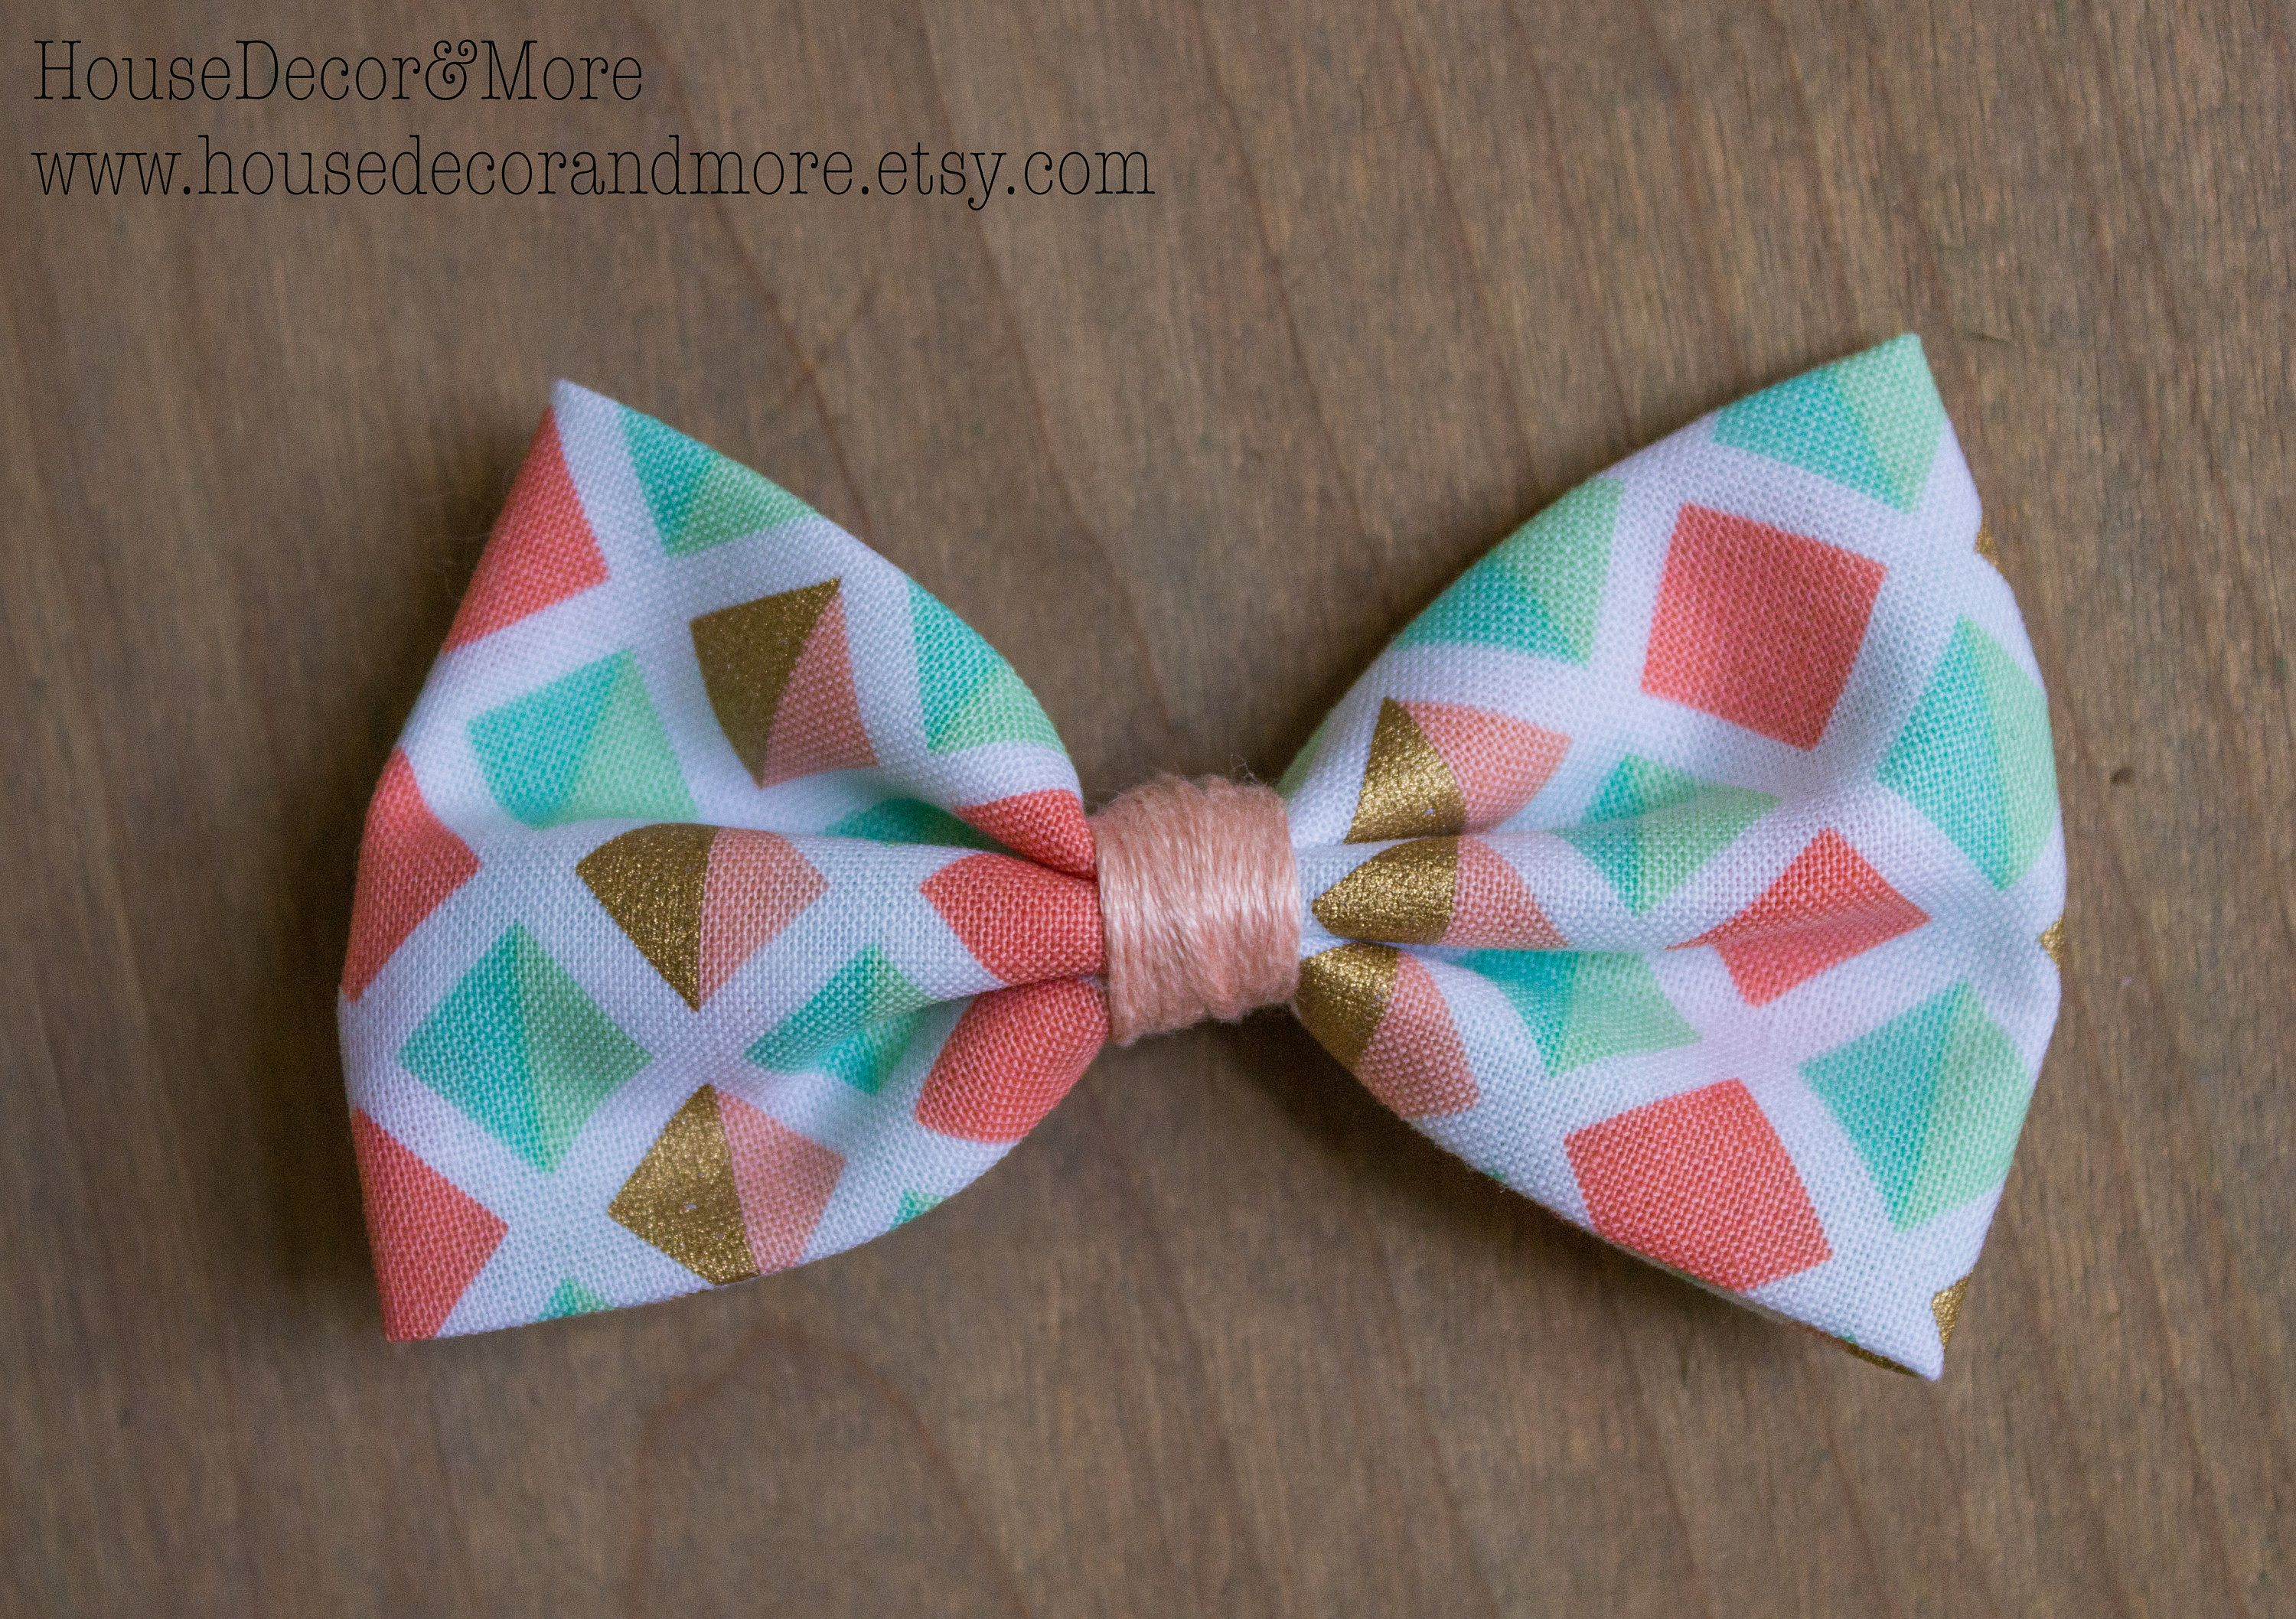 Pink Gold and Mint Geometric Pattern Fabric Hair Bows - Girls Fabric Hair Bow - Toddler Fabric Hair Bows - Birthday Hair Bows